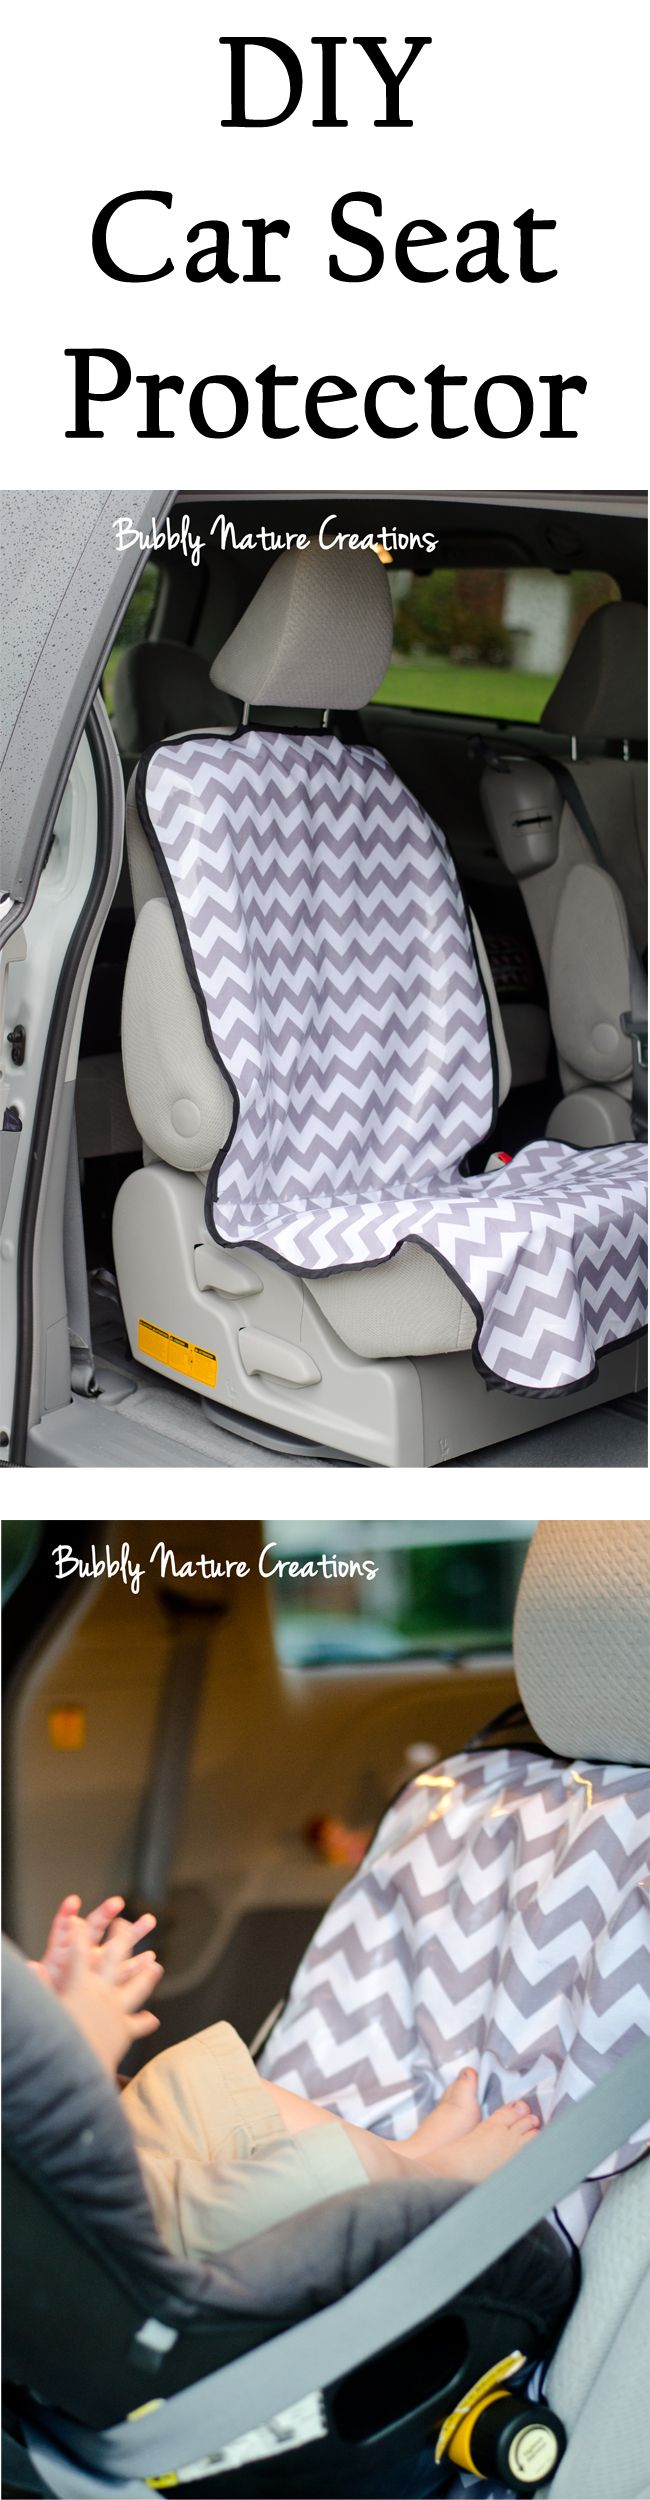 Car Seats Accessories Car Seats For Baby And - Diy car seat protector